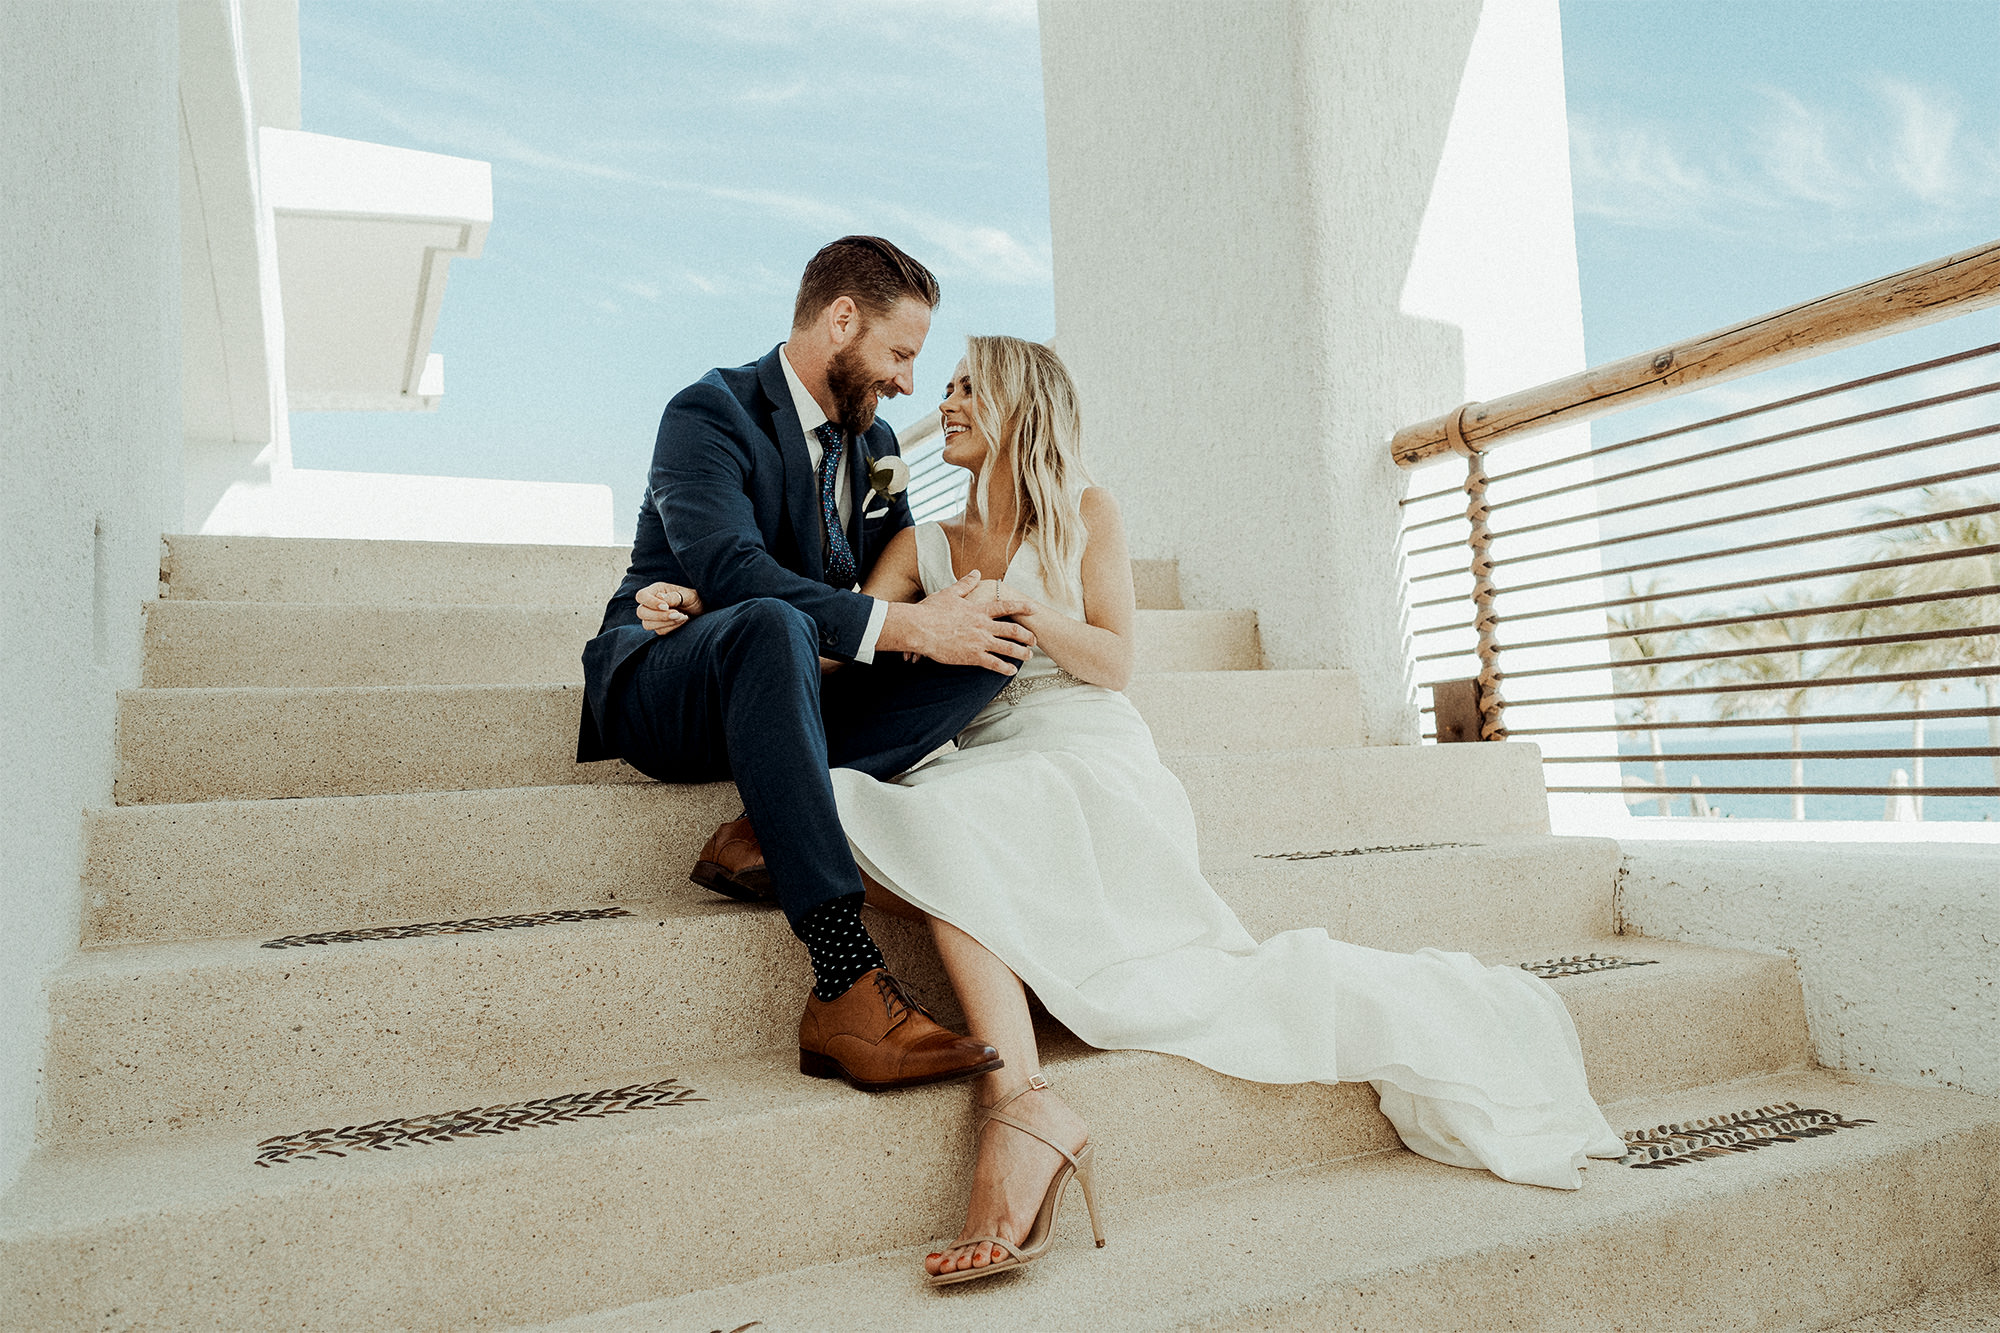 a groom and bride sitting on a stair case